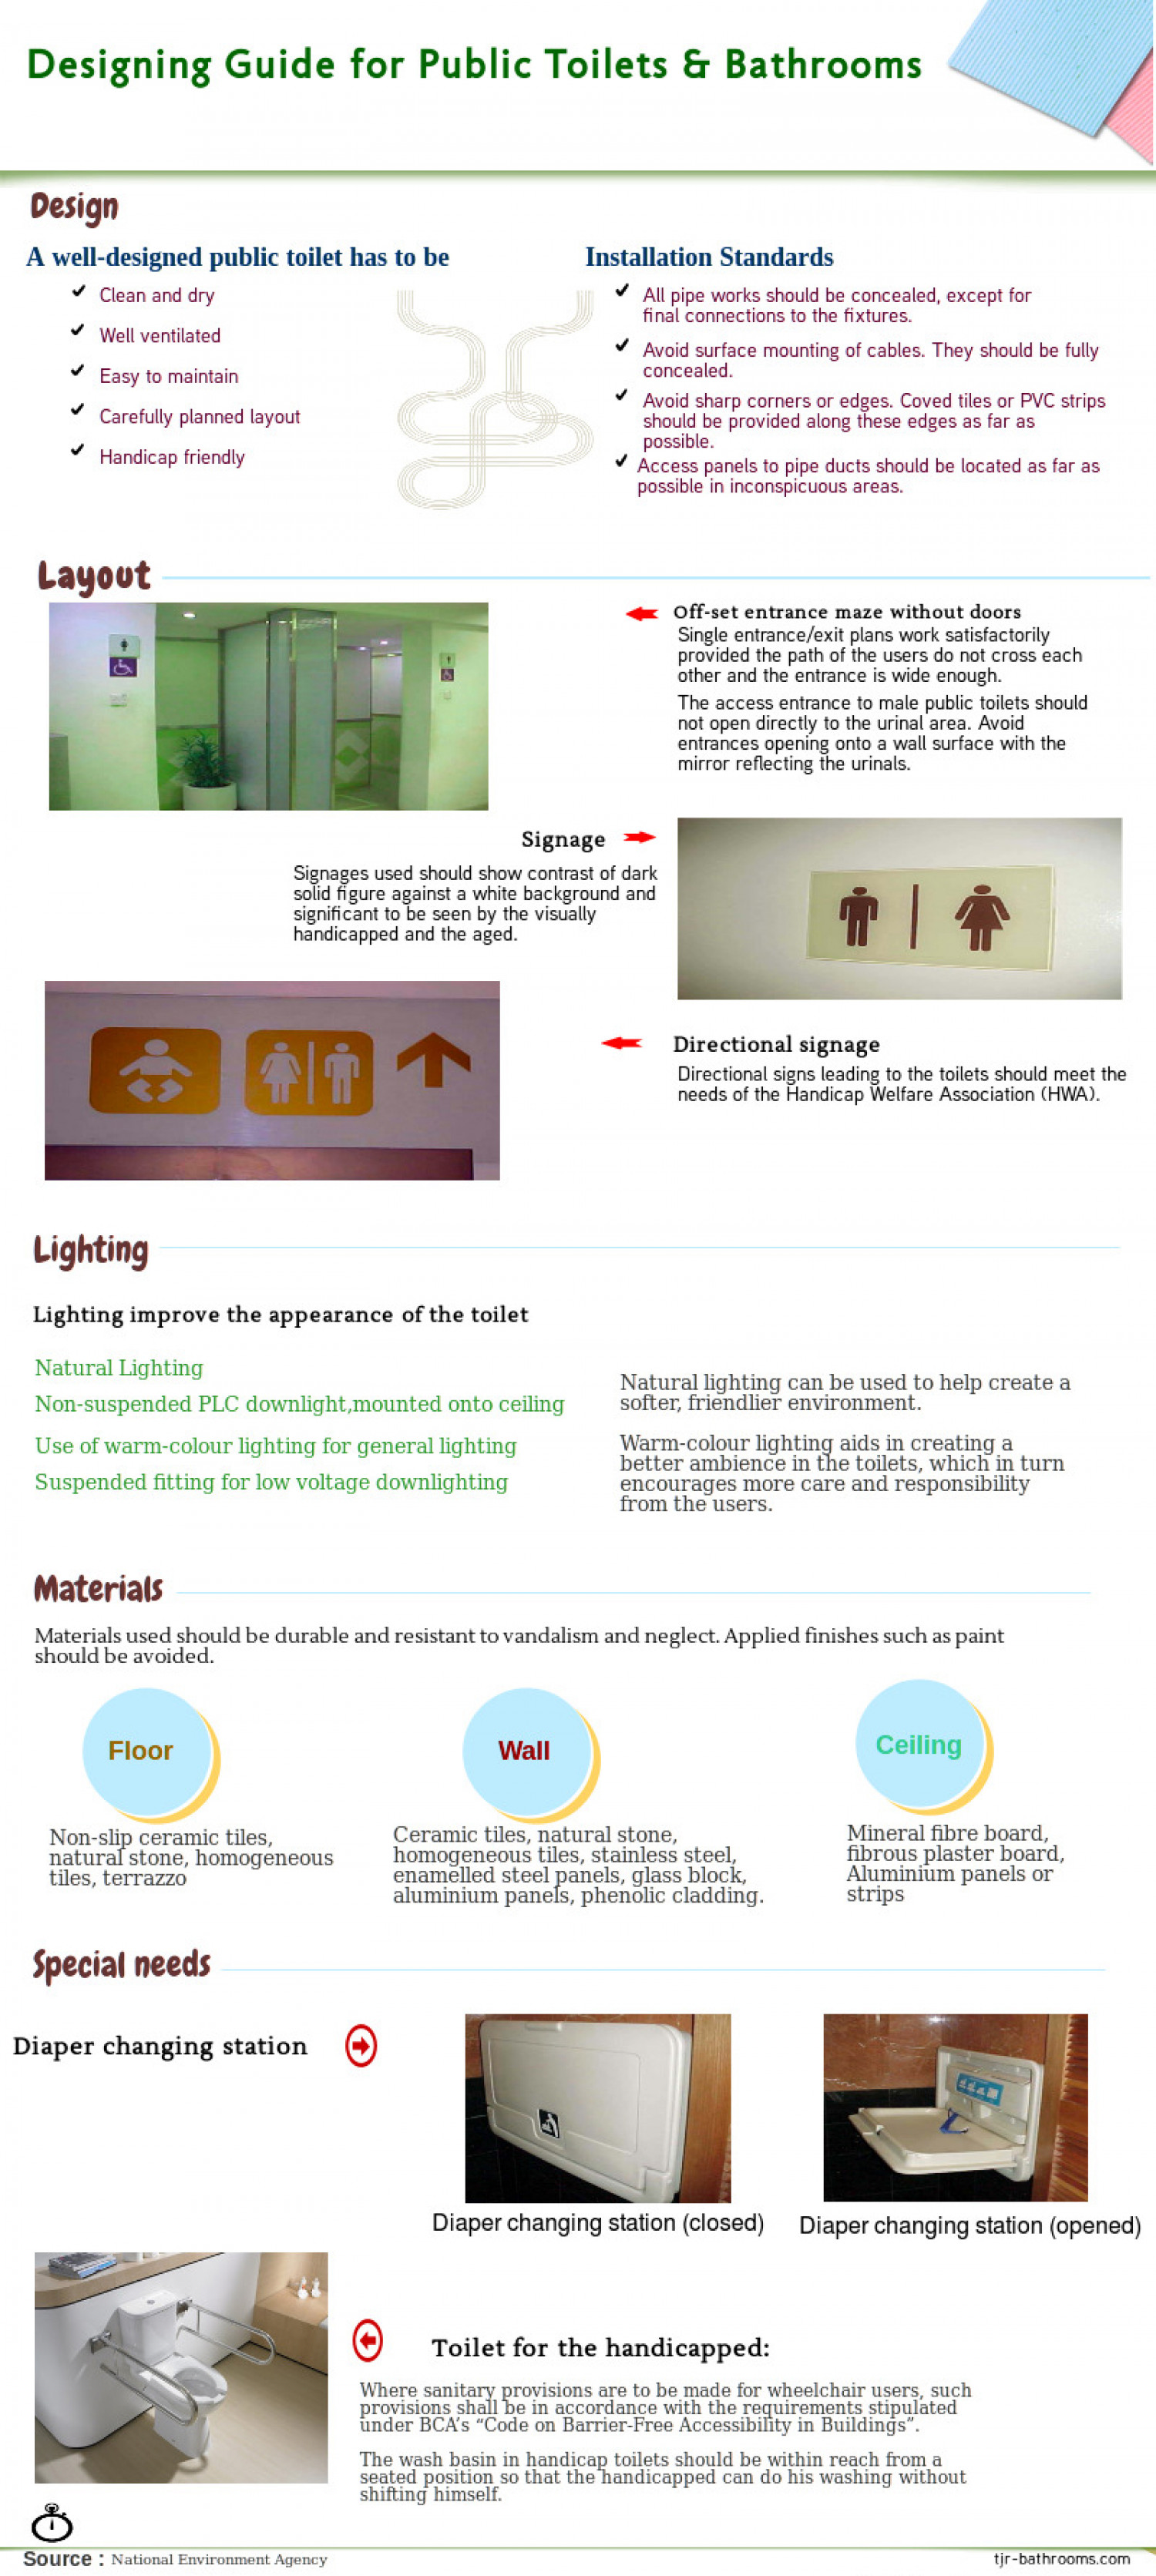 Desiging Guide for Toilet and Bathrooms Infographic